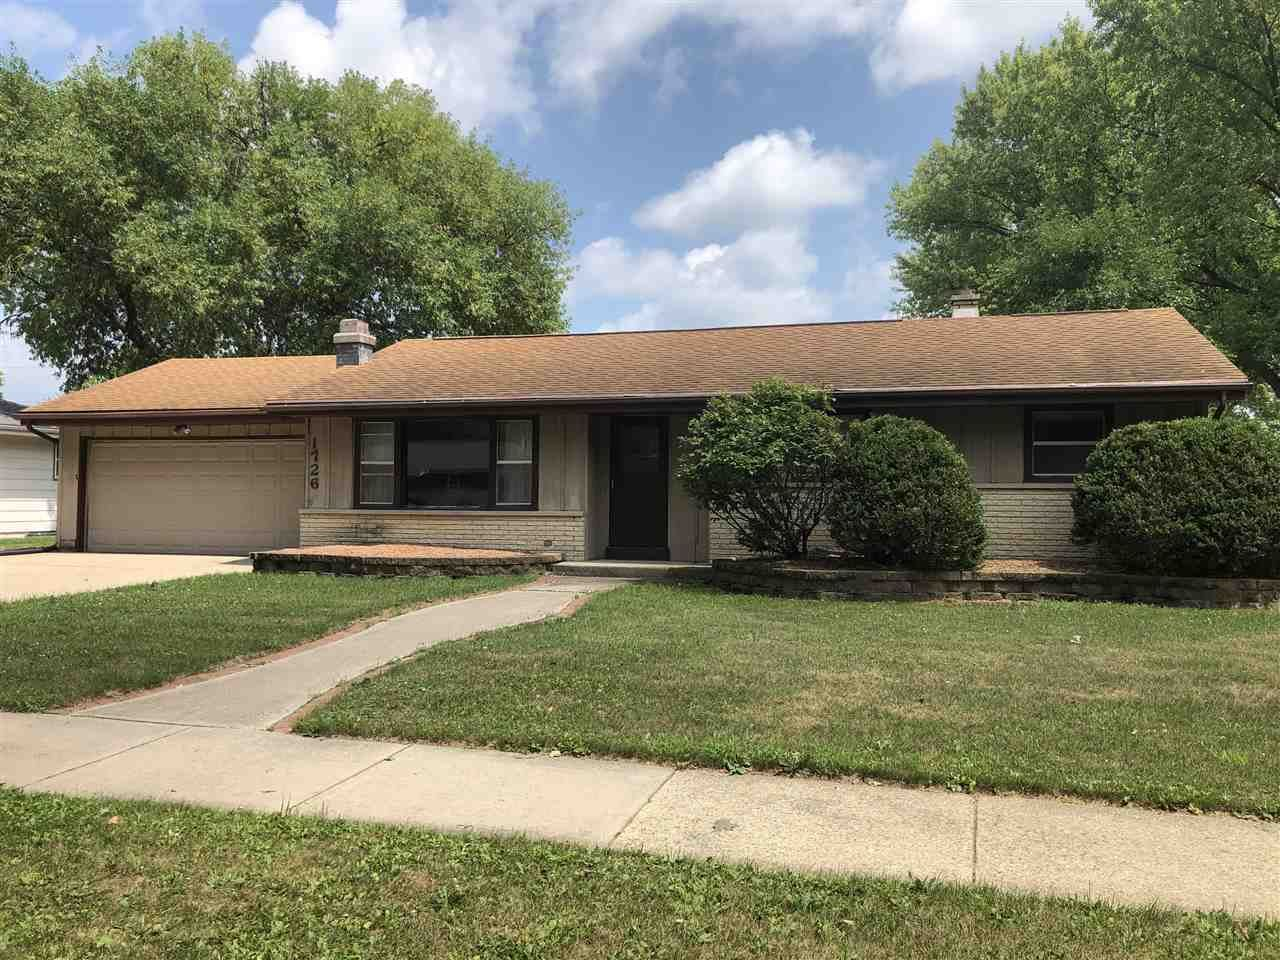 1726 N Claremont Ave, Jackson, WI 53545 - #: 1916190